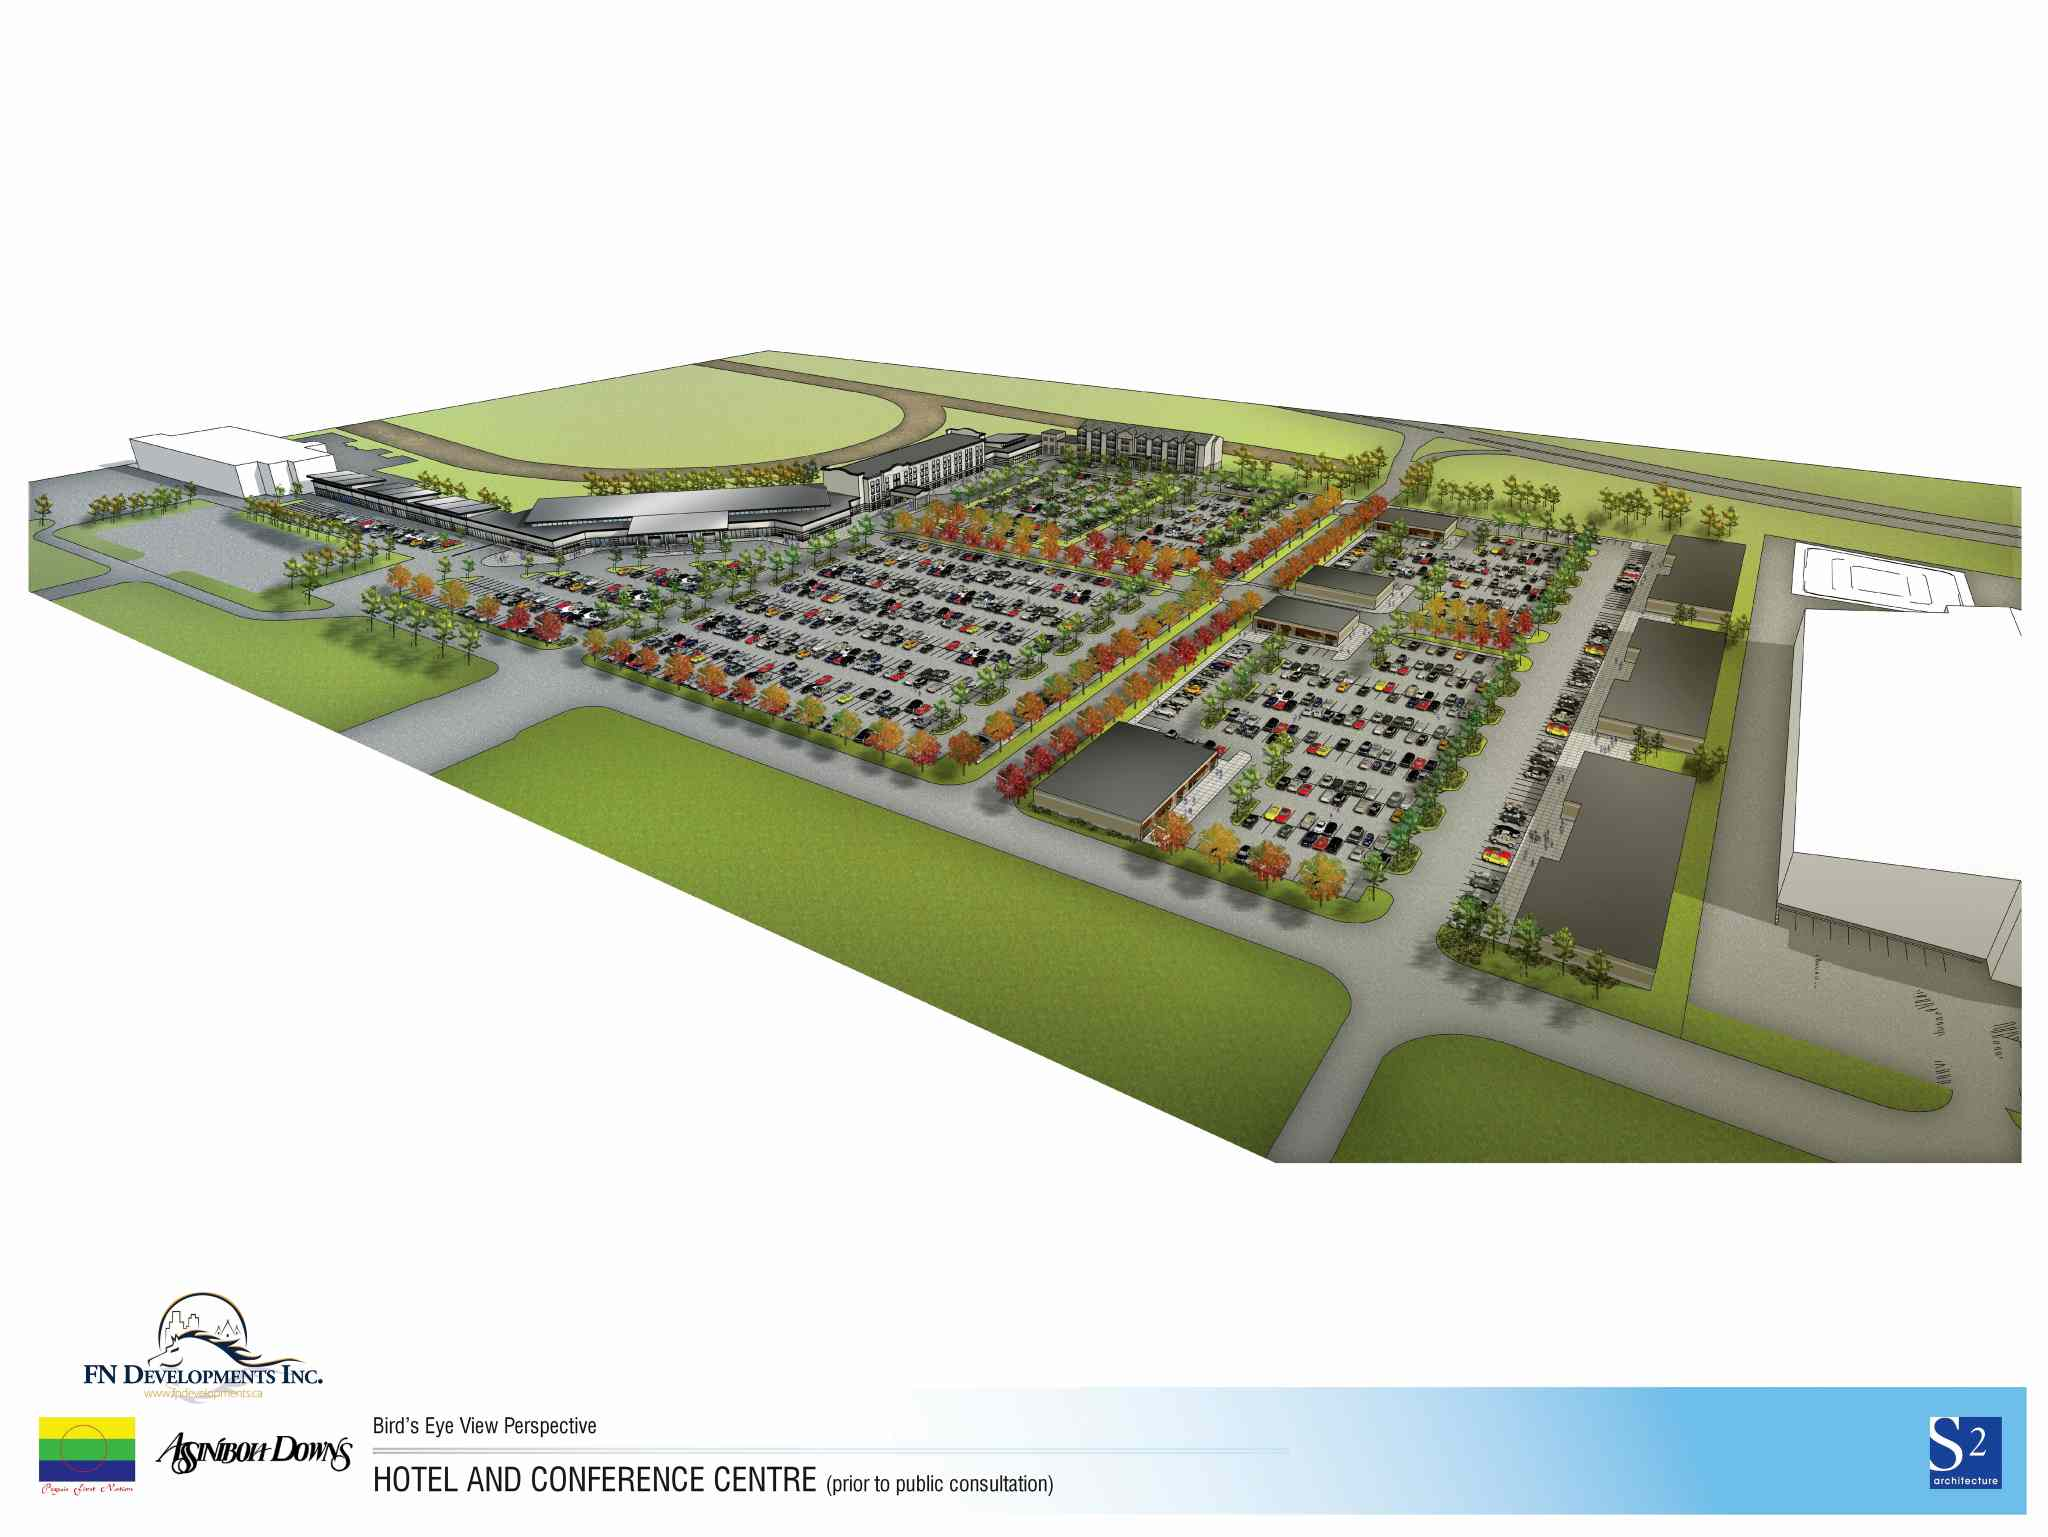 A graphic of the development site. The Manitoba Jockey Club and Peguis First Nation have formed FN Developments Inc. to work on a new development at Assiniboia Downs. The plans include hotels, convention and retail space.